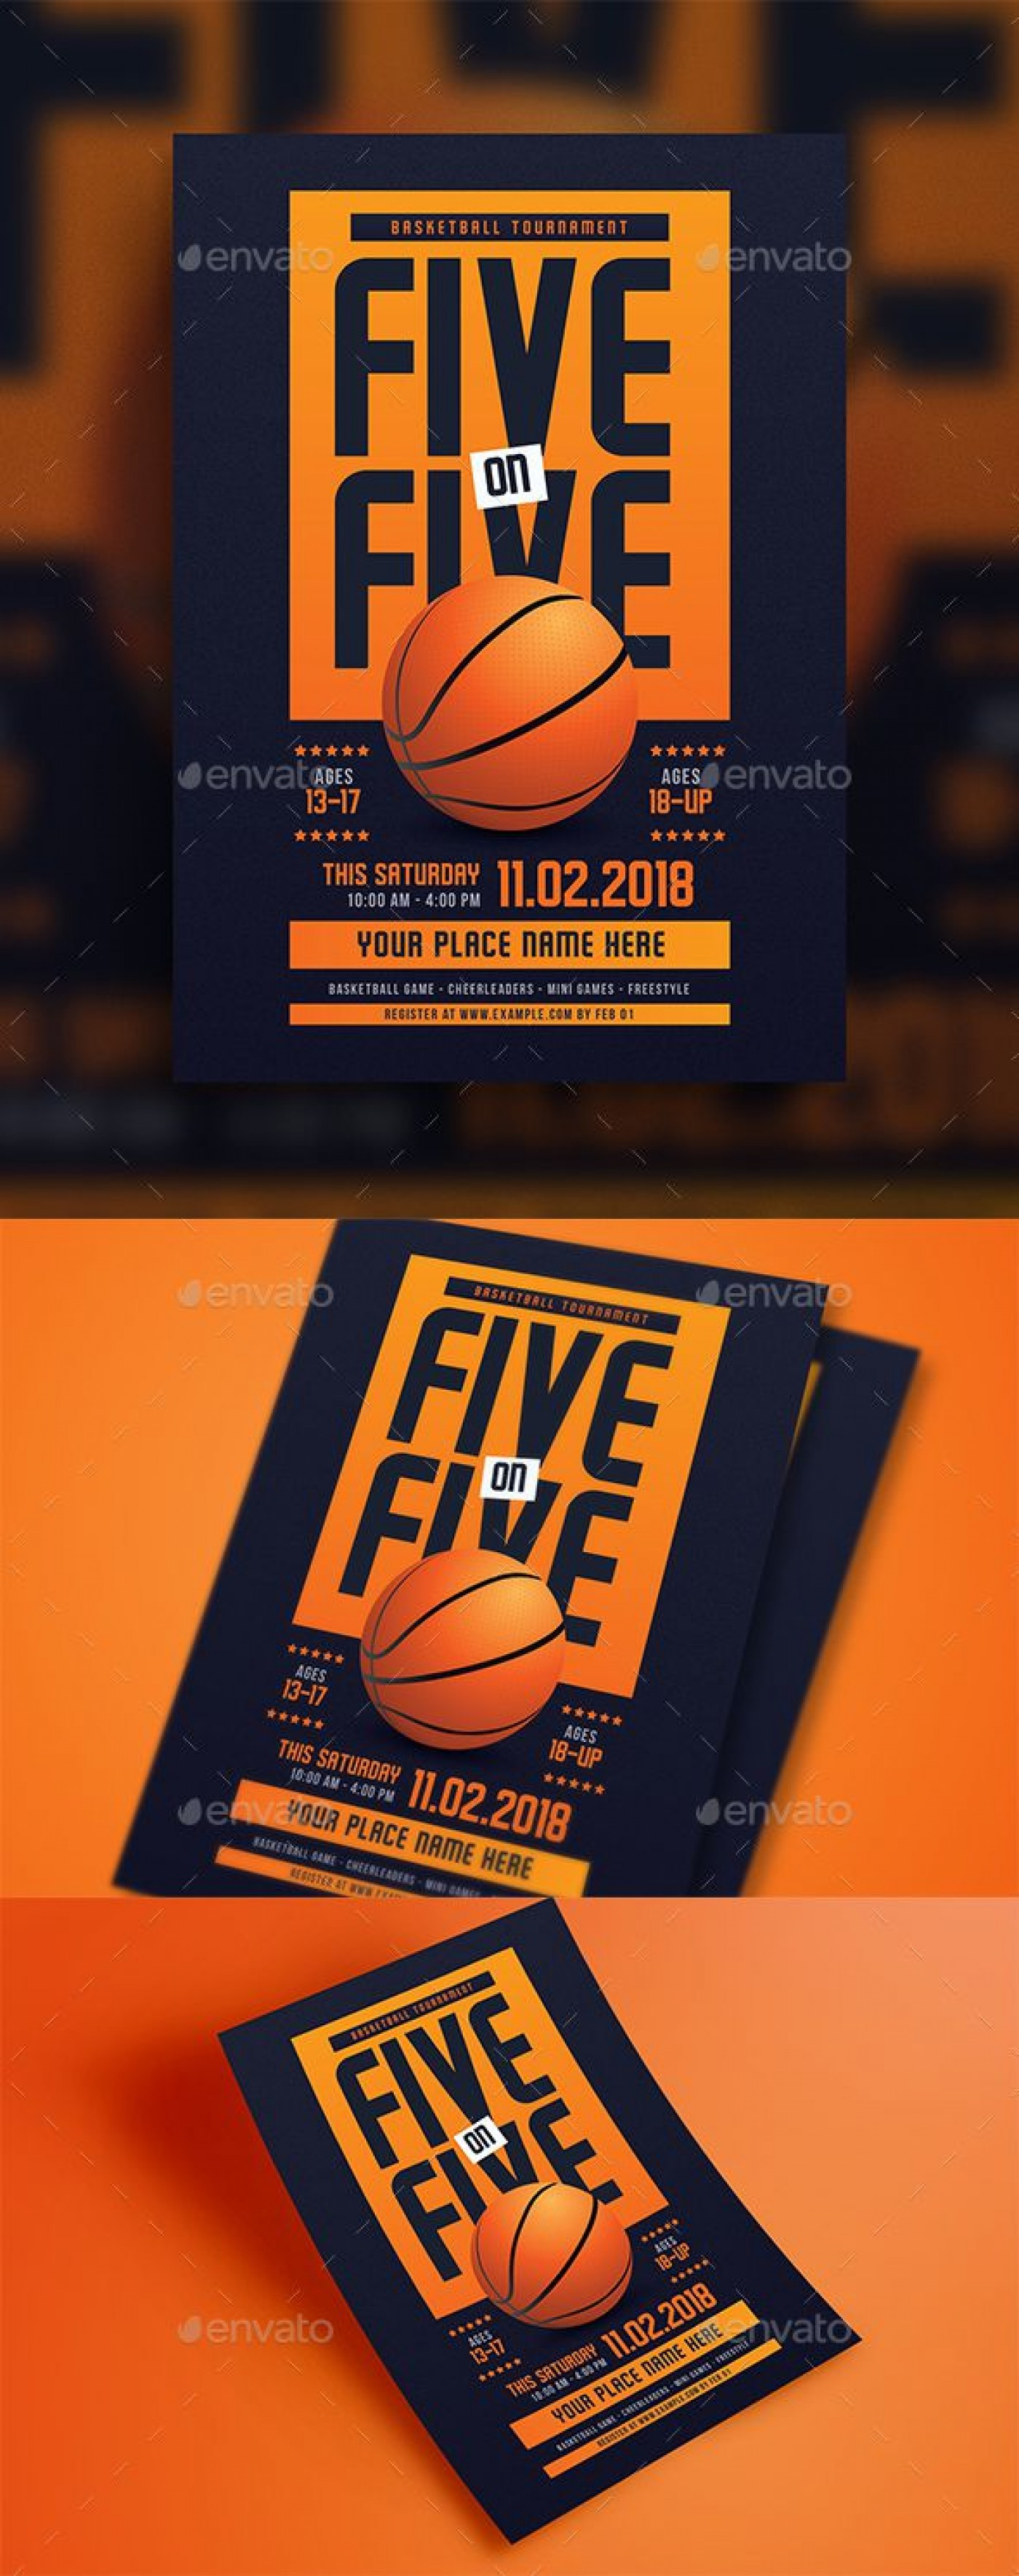 009 Striking Basketball Tournament Flyer Template Highest Quality  3 On Free1400